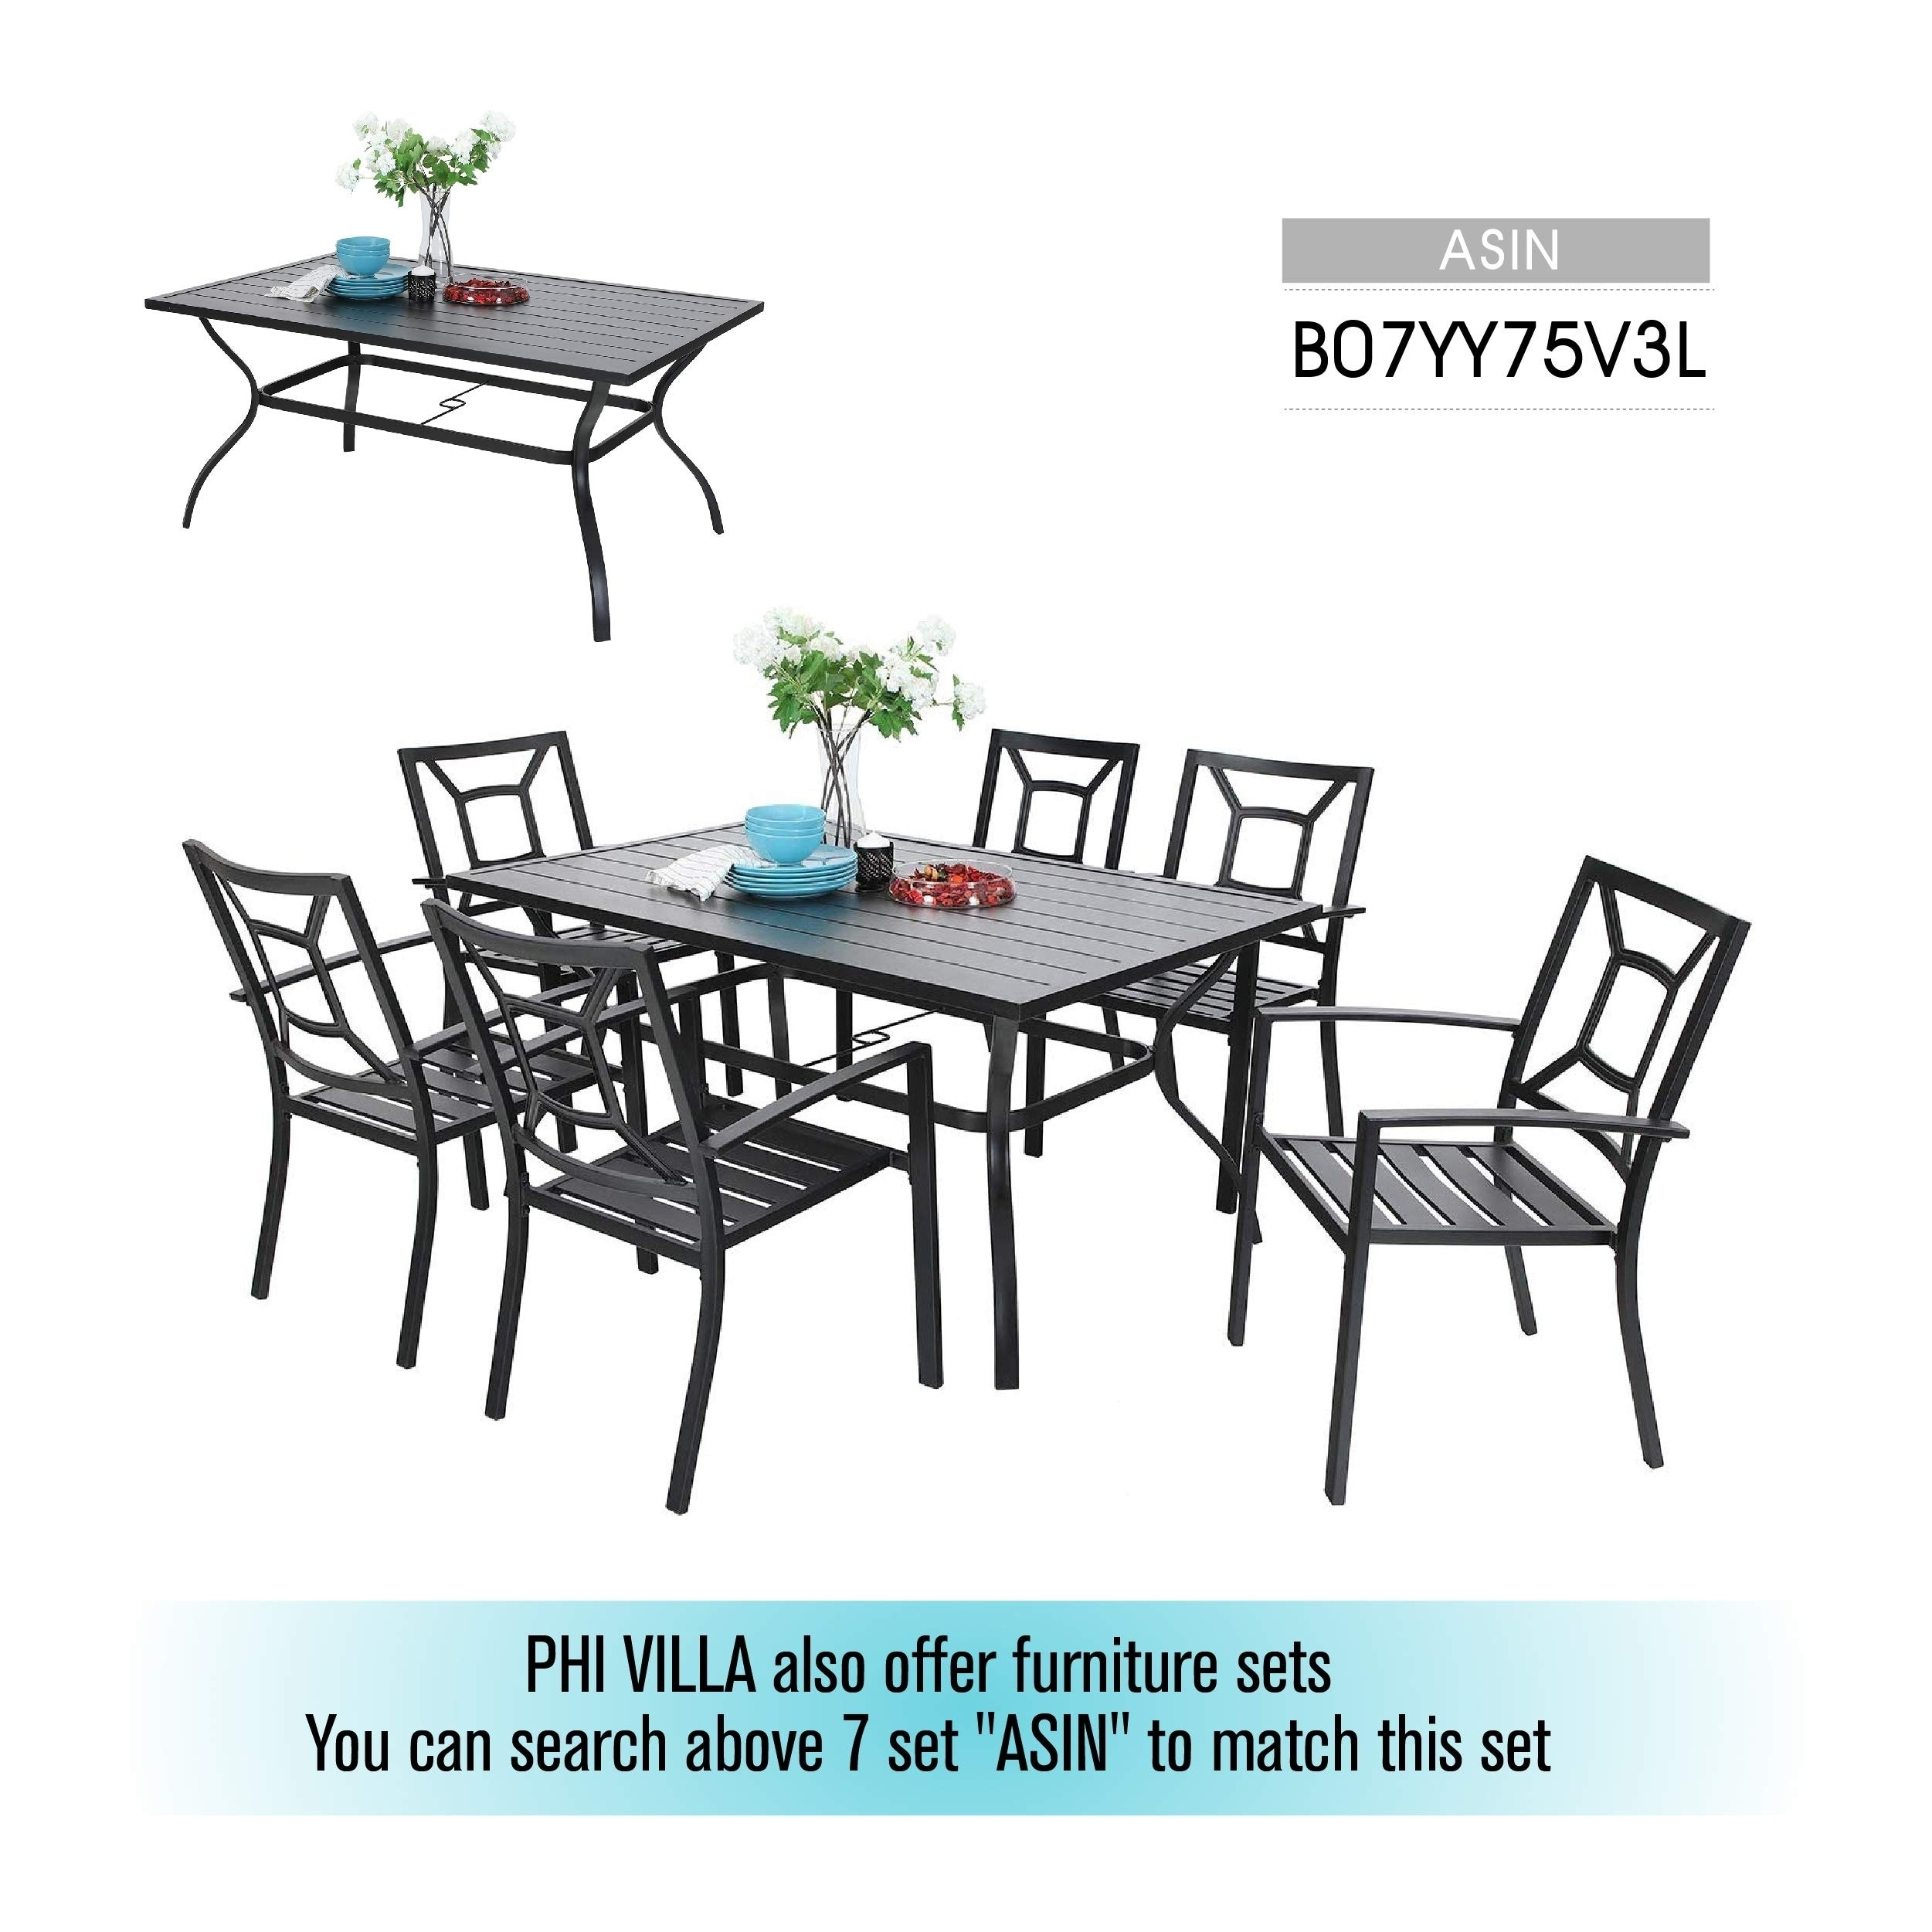 Outdoor Metal Dining Table Garden 6 Person Umbrella Table For Lawn Patio Pool Sturdy Steel 1 Table Overstock 30272830